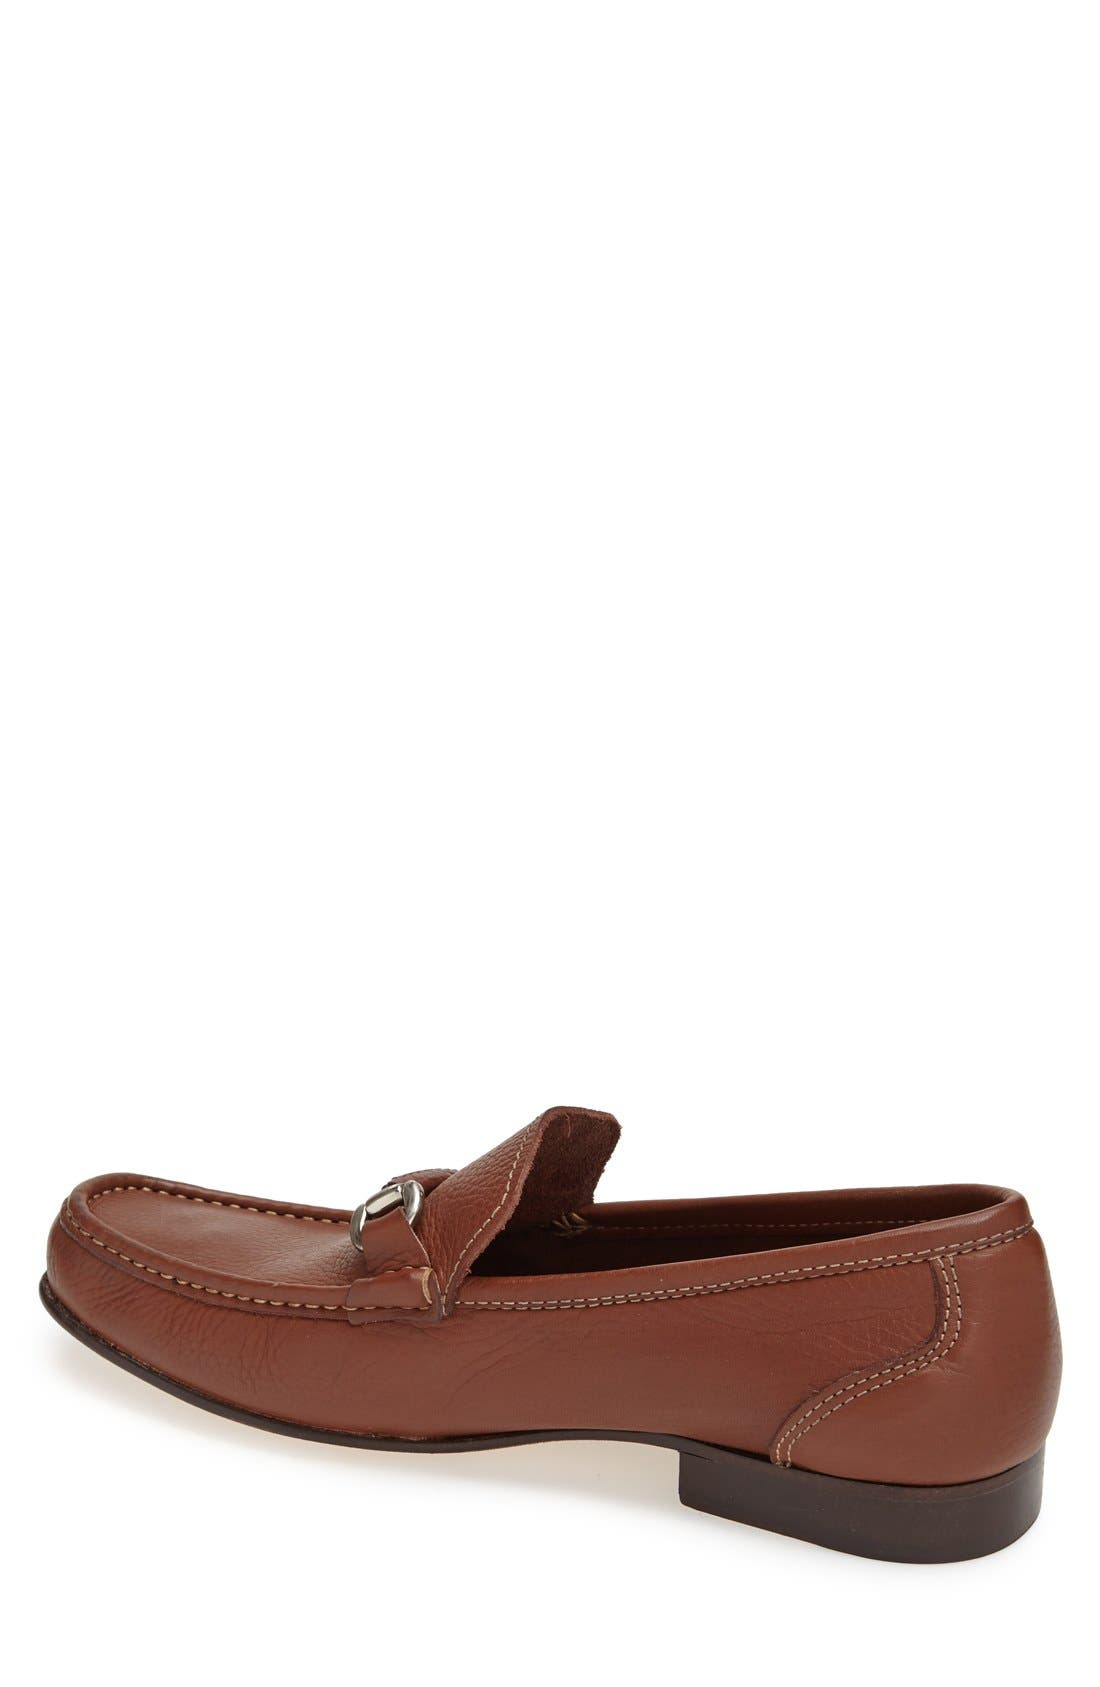 'San Remo' Leather Bit Loafer,                             Alternate thumbnail 2, color,                             Brown